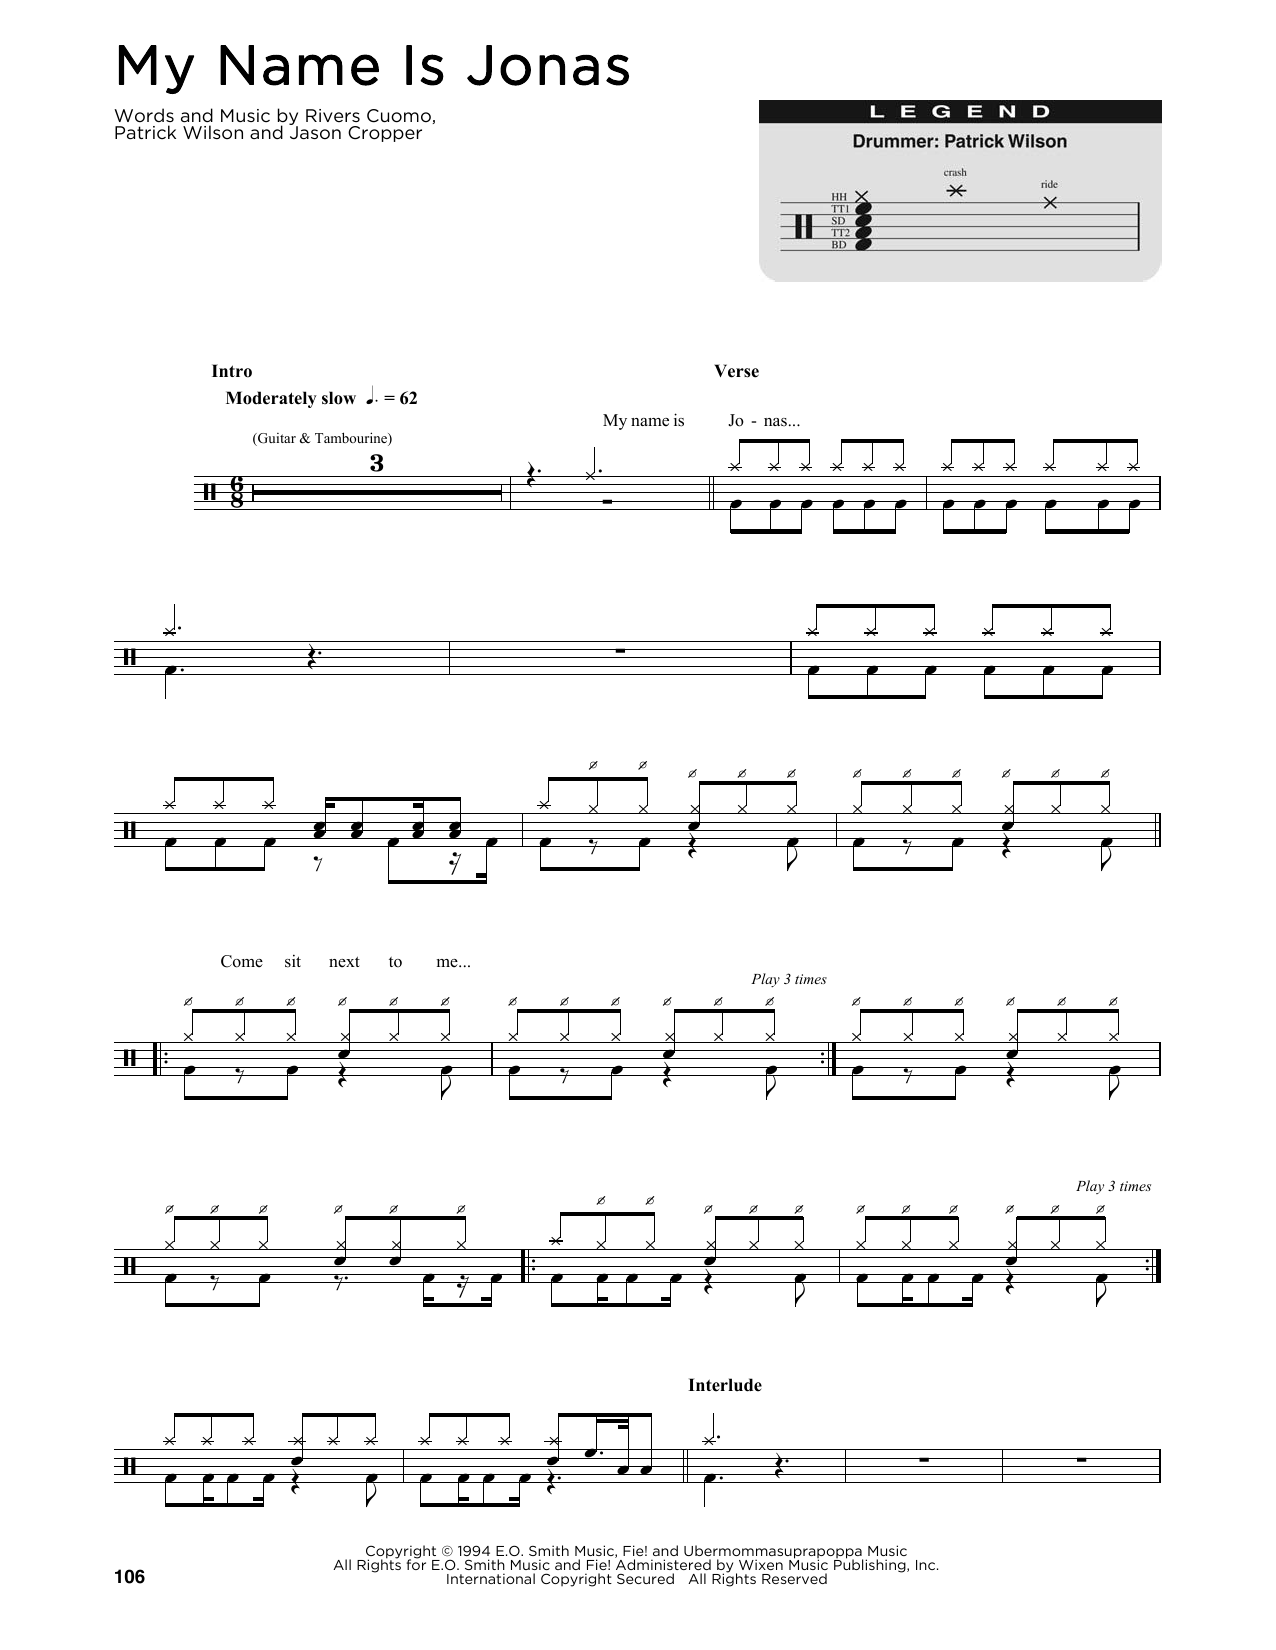 My Name Is Jonas (Drums Transcription)